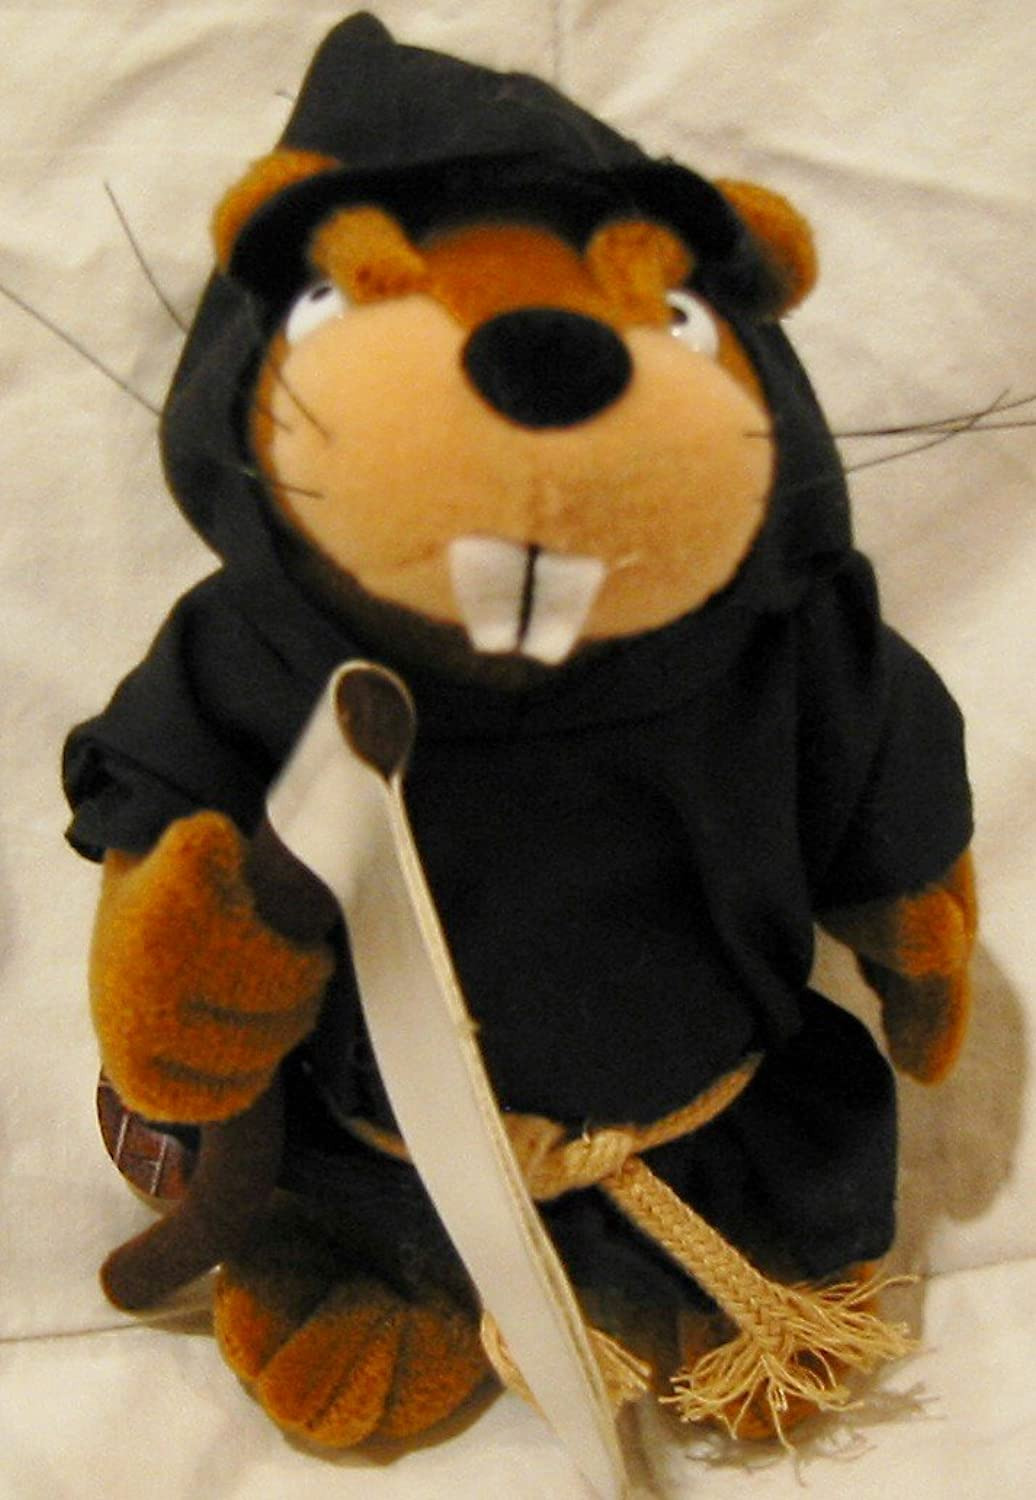 GRIM BEAVER  MEANIES  Series 3  Bean Bag Plush Toy From The Idea Factory